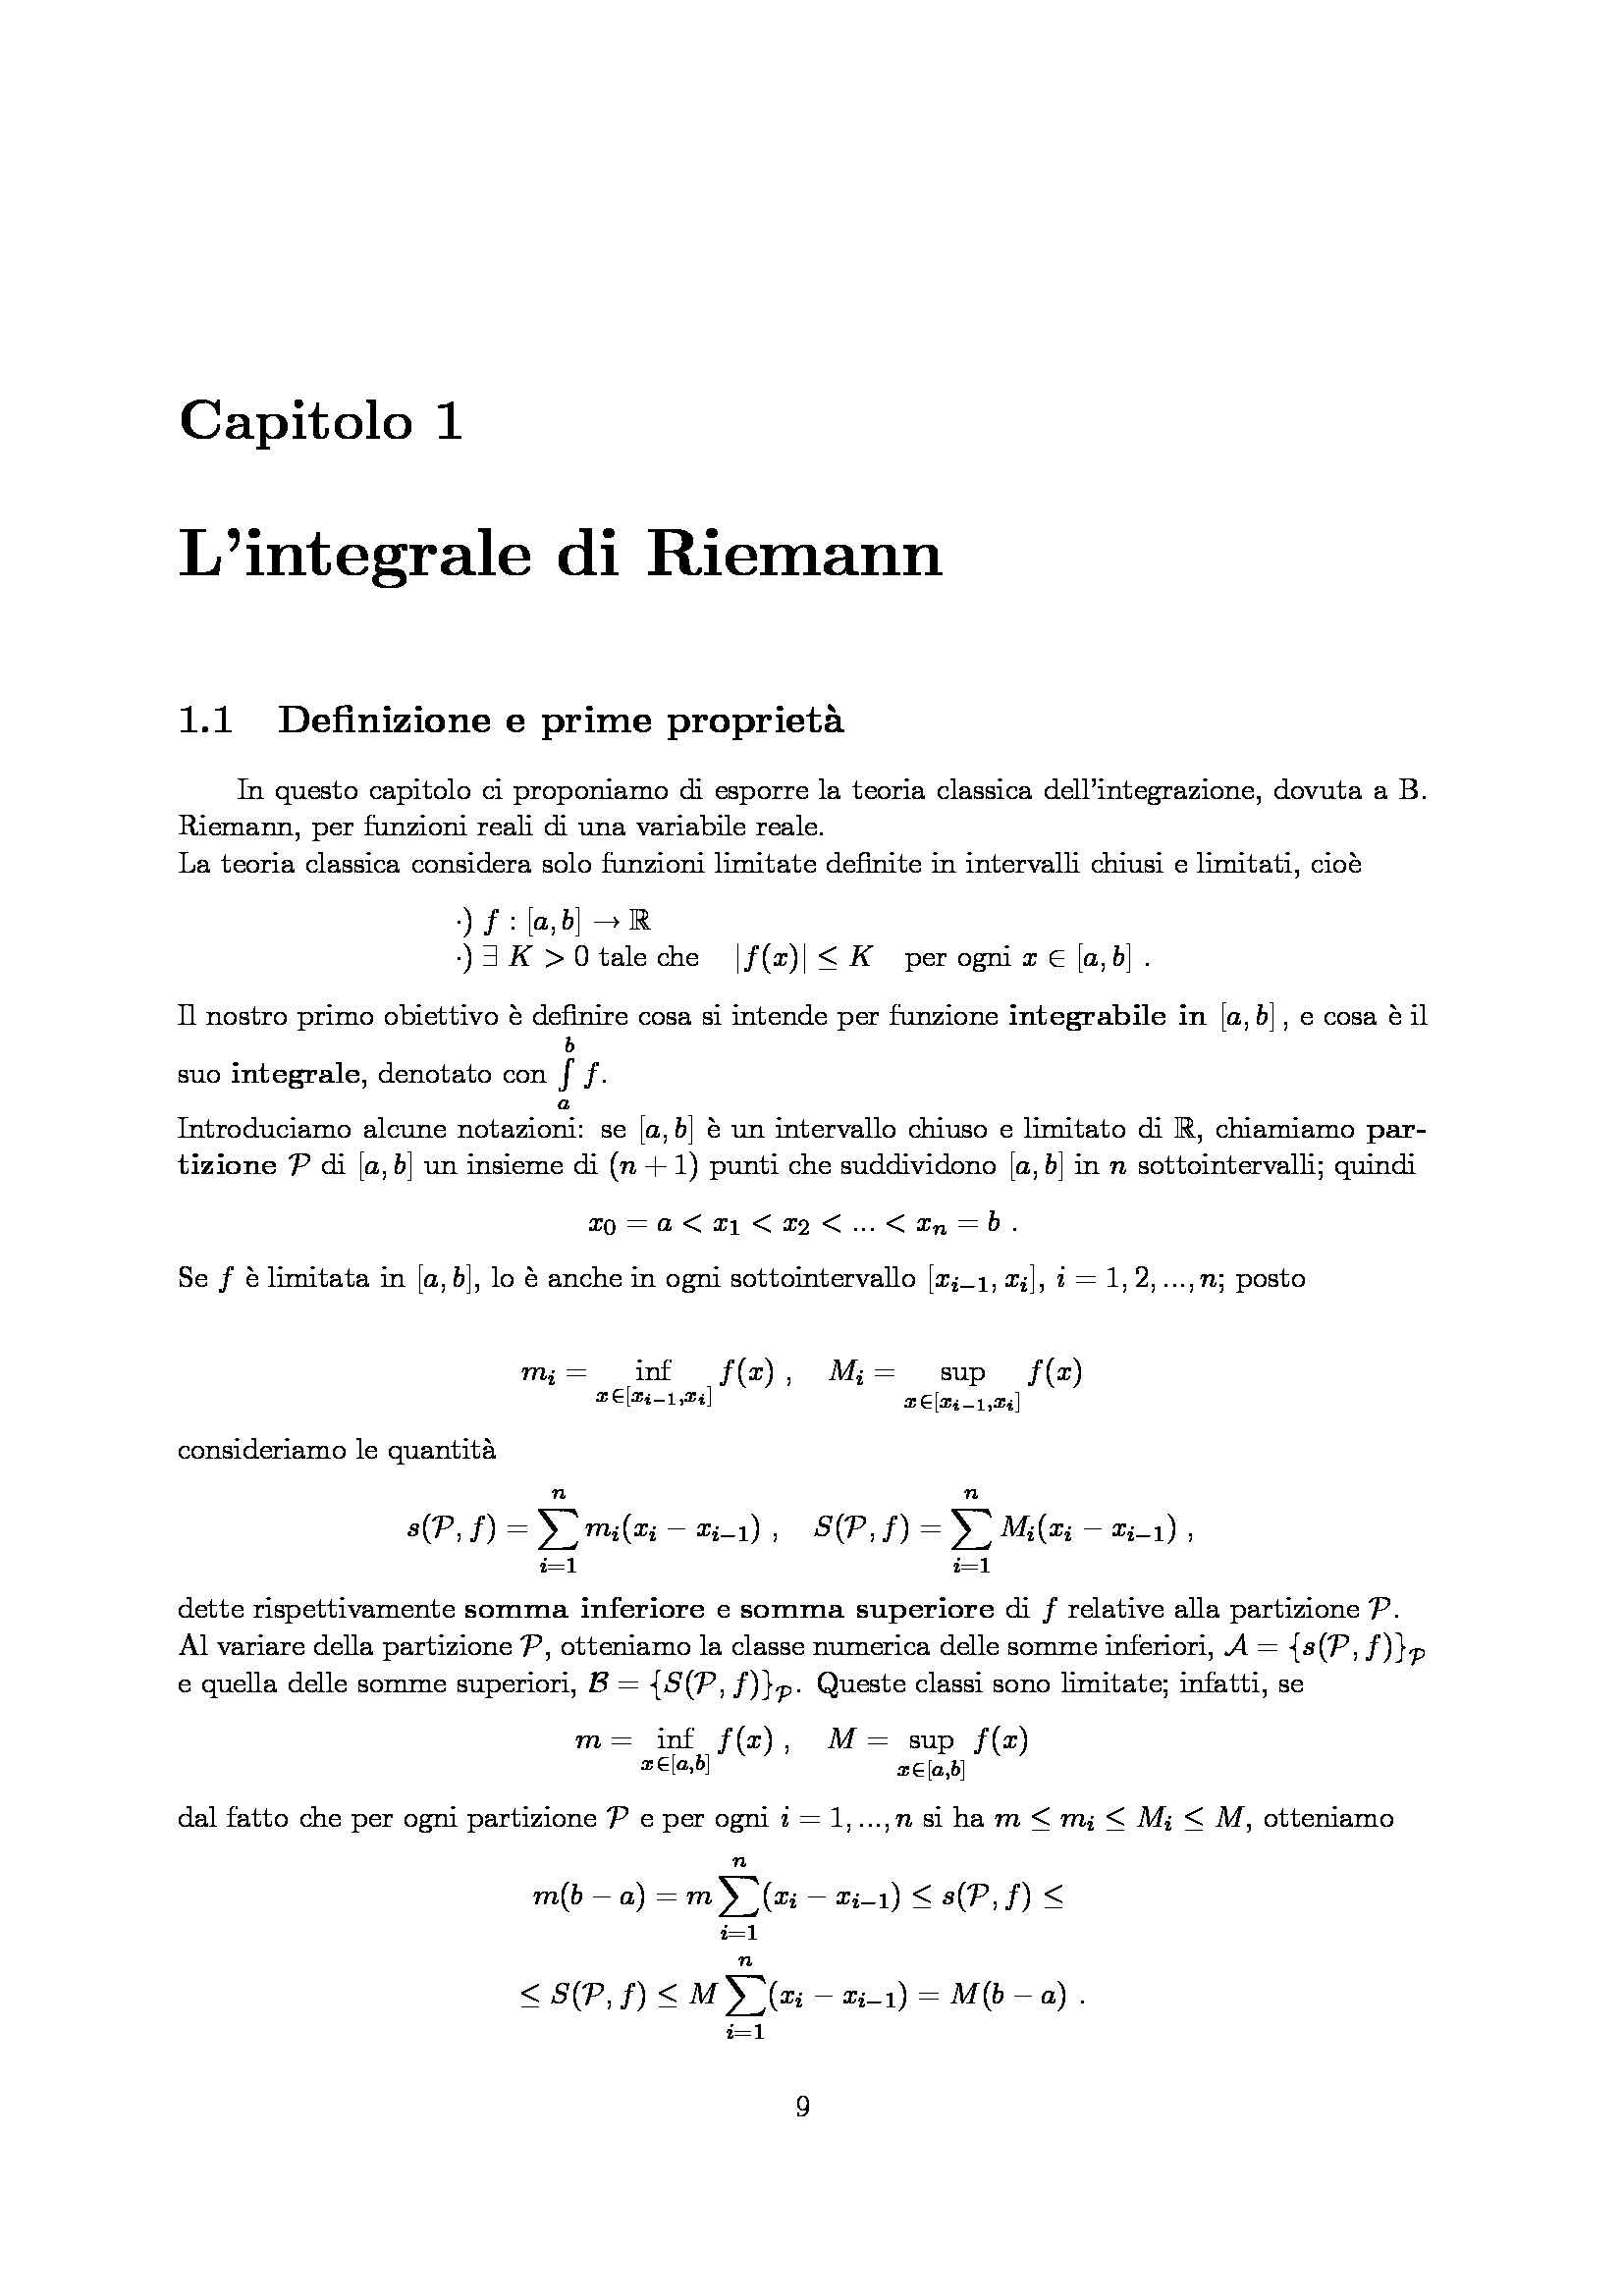 Dispensa di Matematica - Analisi matematica 2